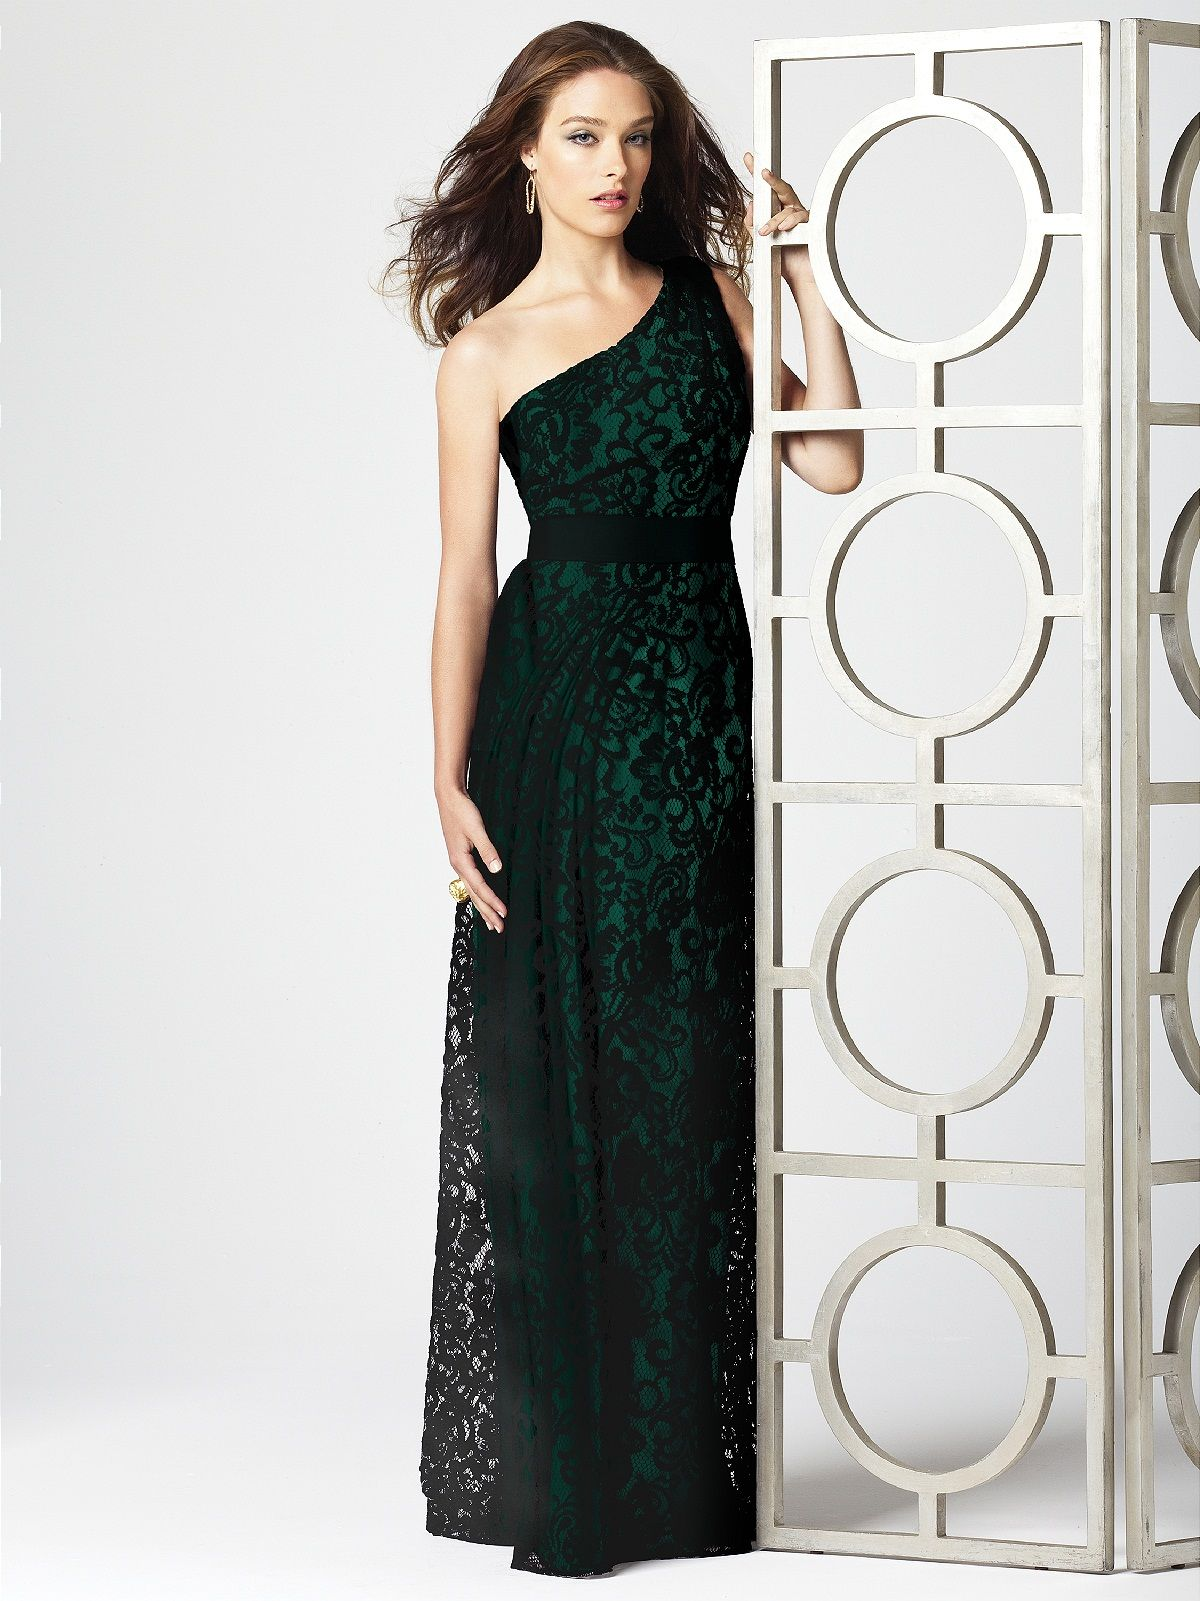 Bridesmaids dress hunter green lace wedding gowns and bridal